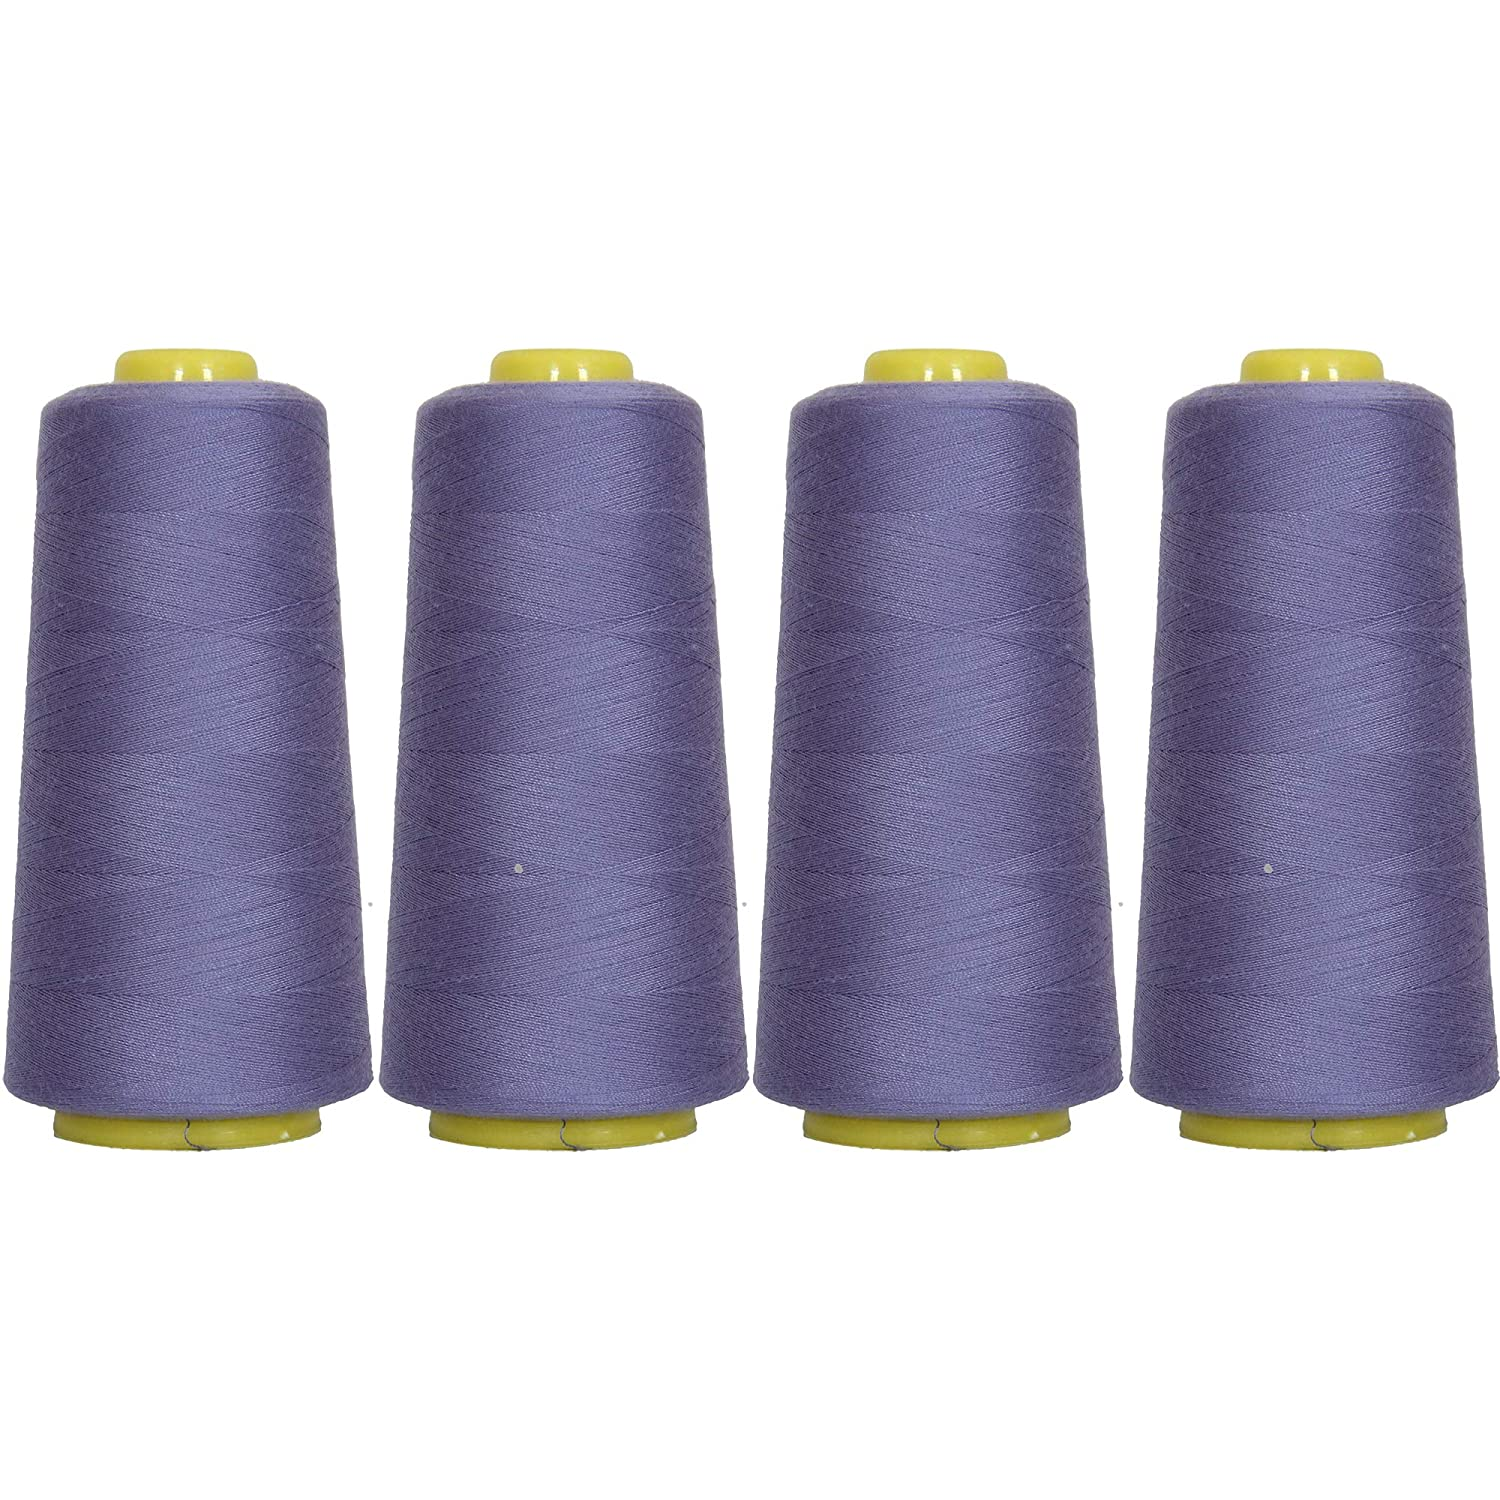 56 Colors Available Threadart Polyester Serger Thread 2750 yds 40//2 4 Cone Bundle Pack White